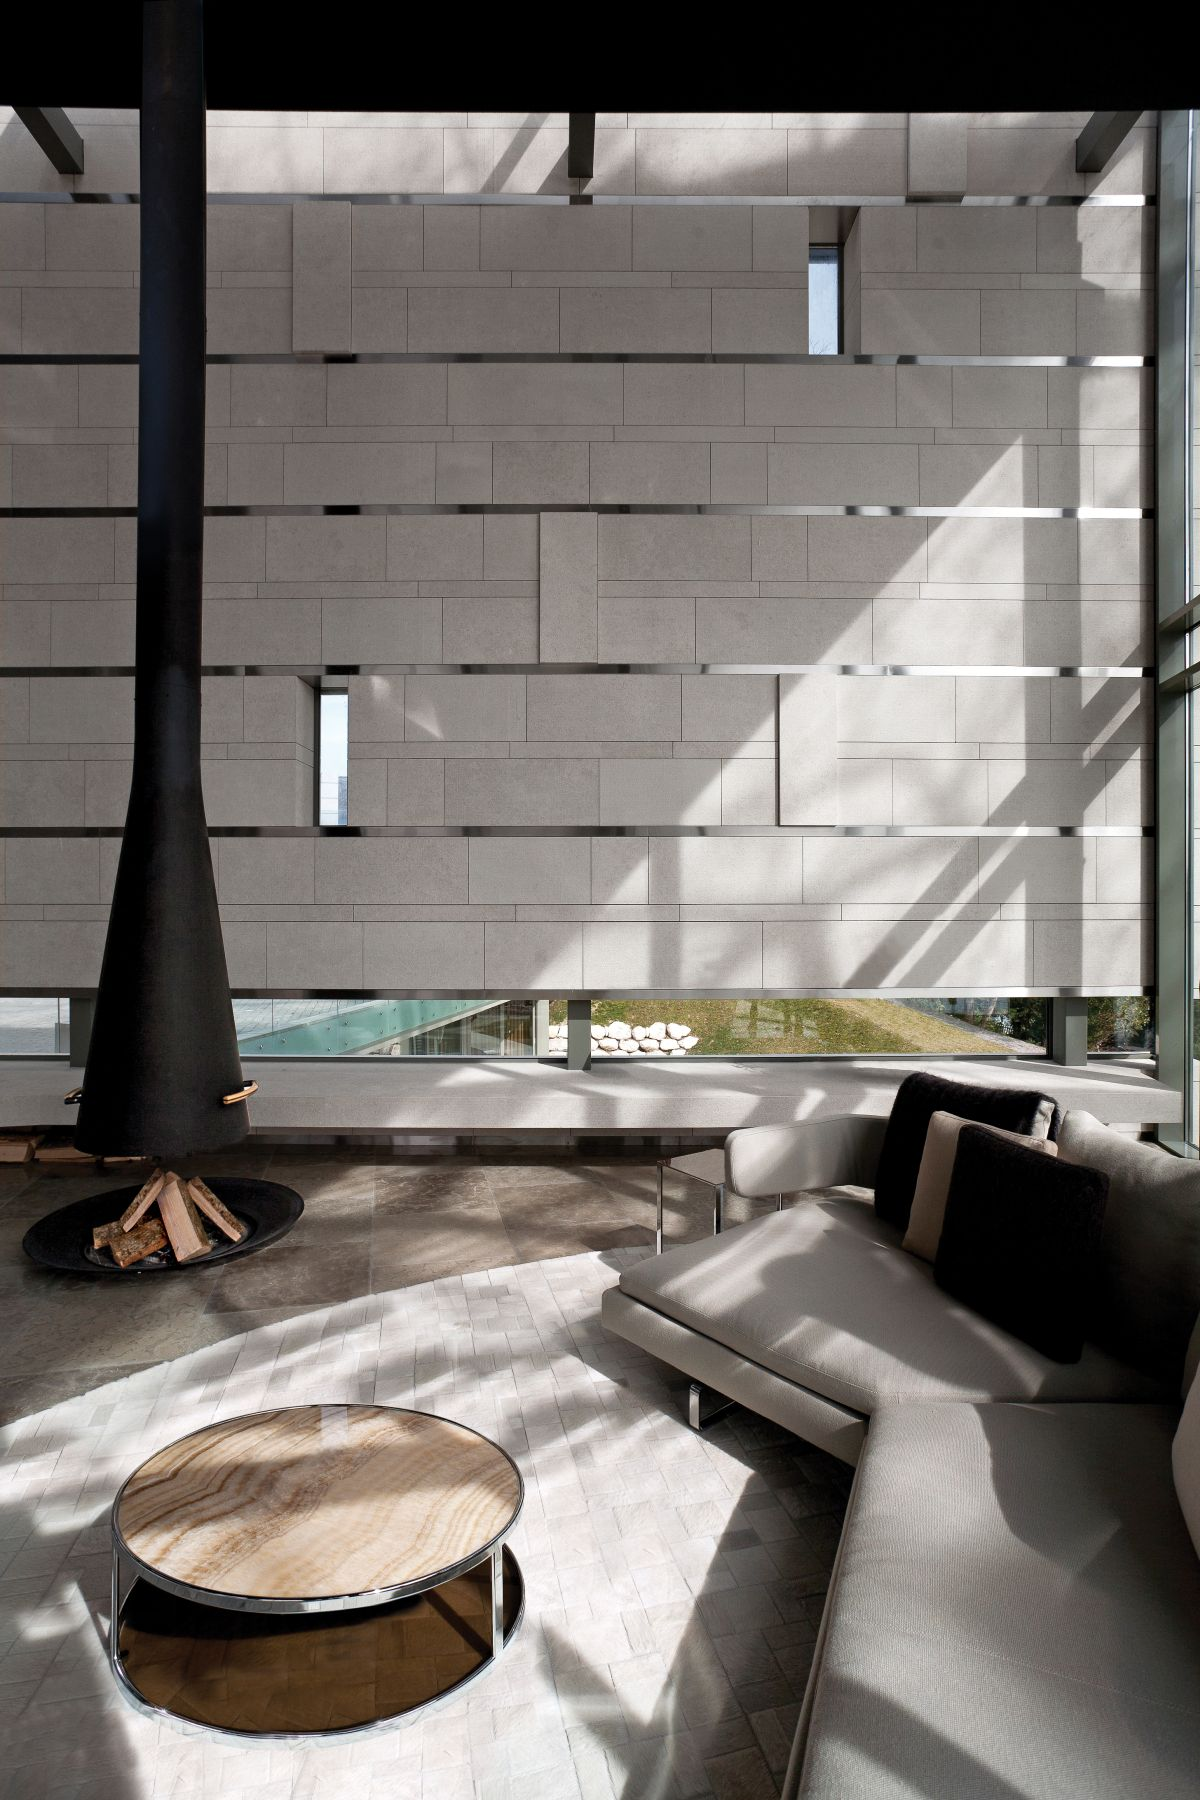 The formal and informal sections of the living area are combined within a large floor plan